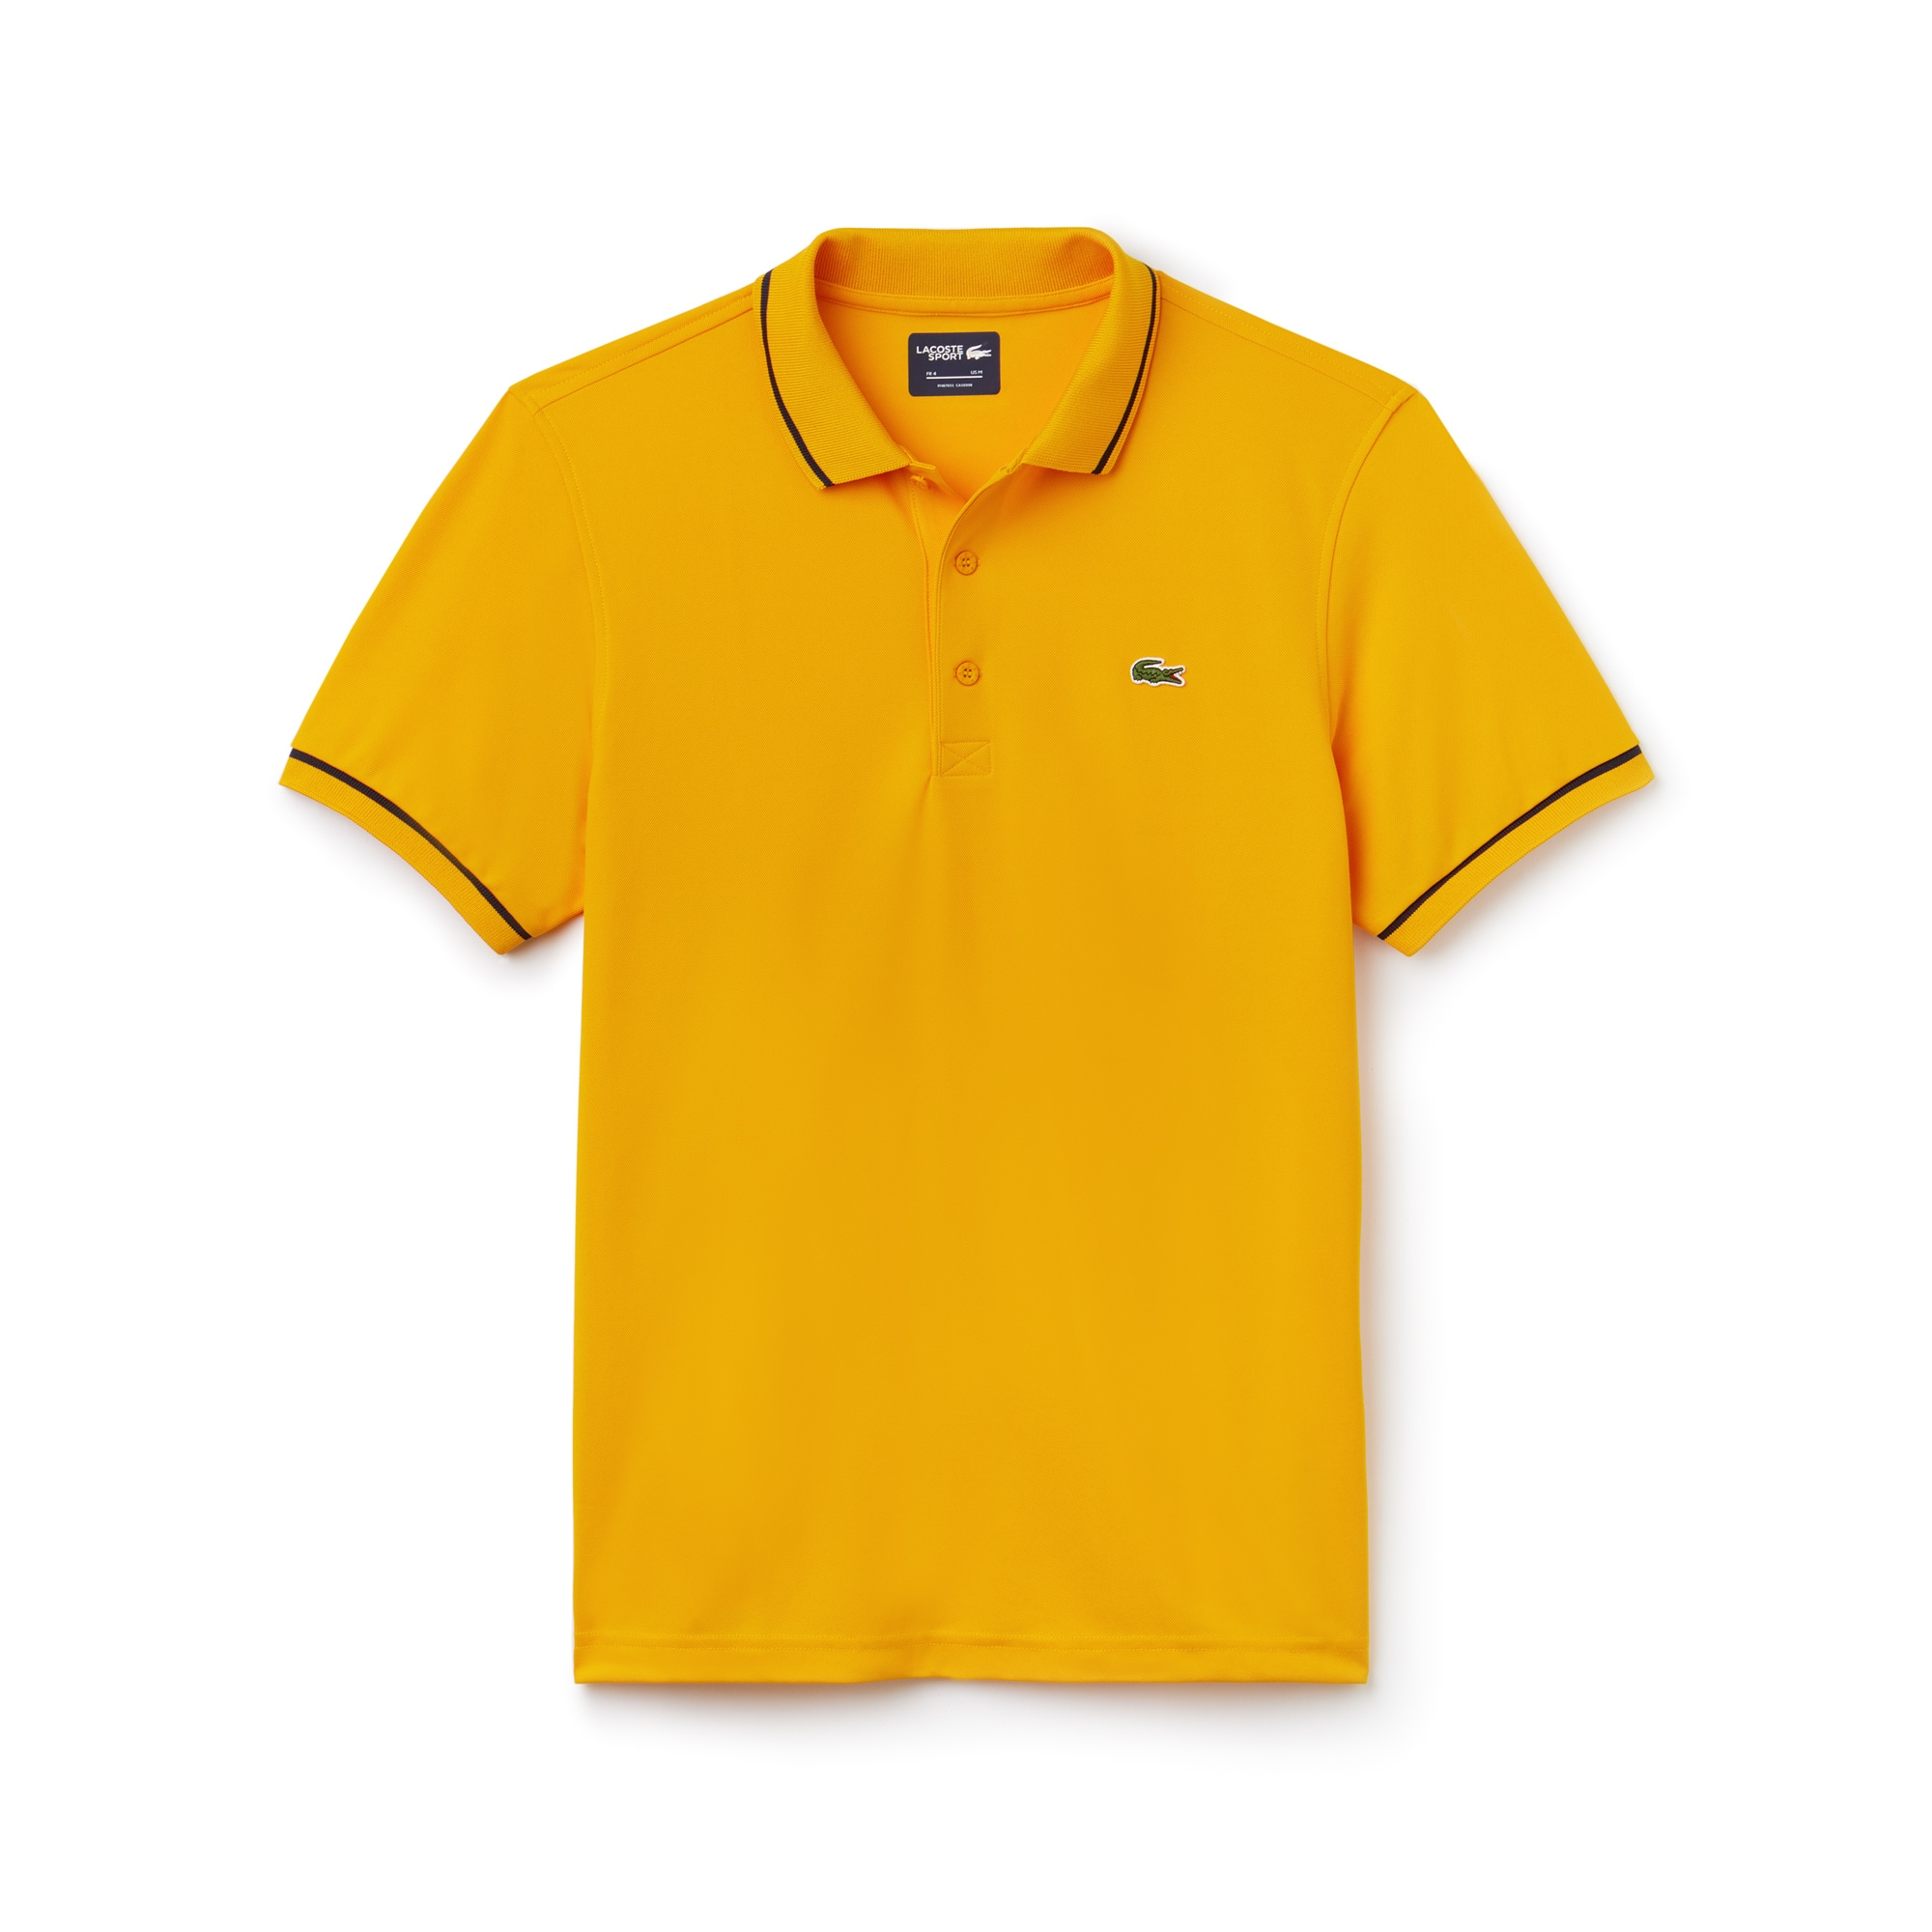 Men's  SPORT Tennis Piped Technical Piqué Polo Shirt